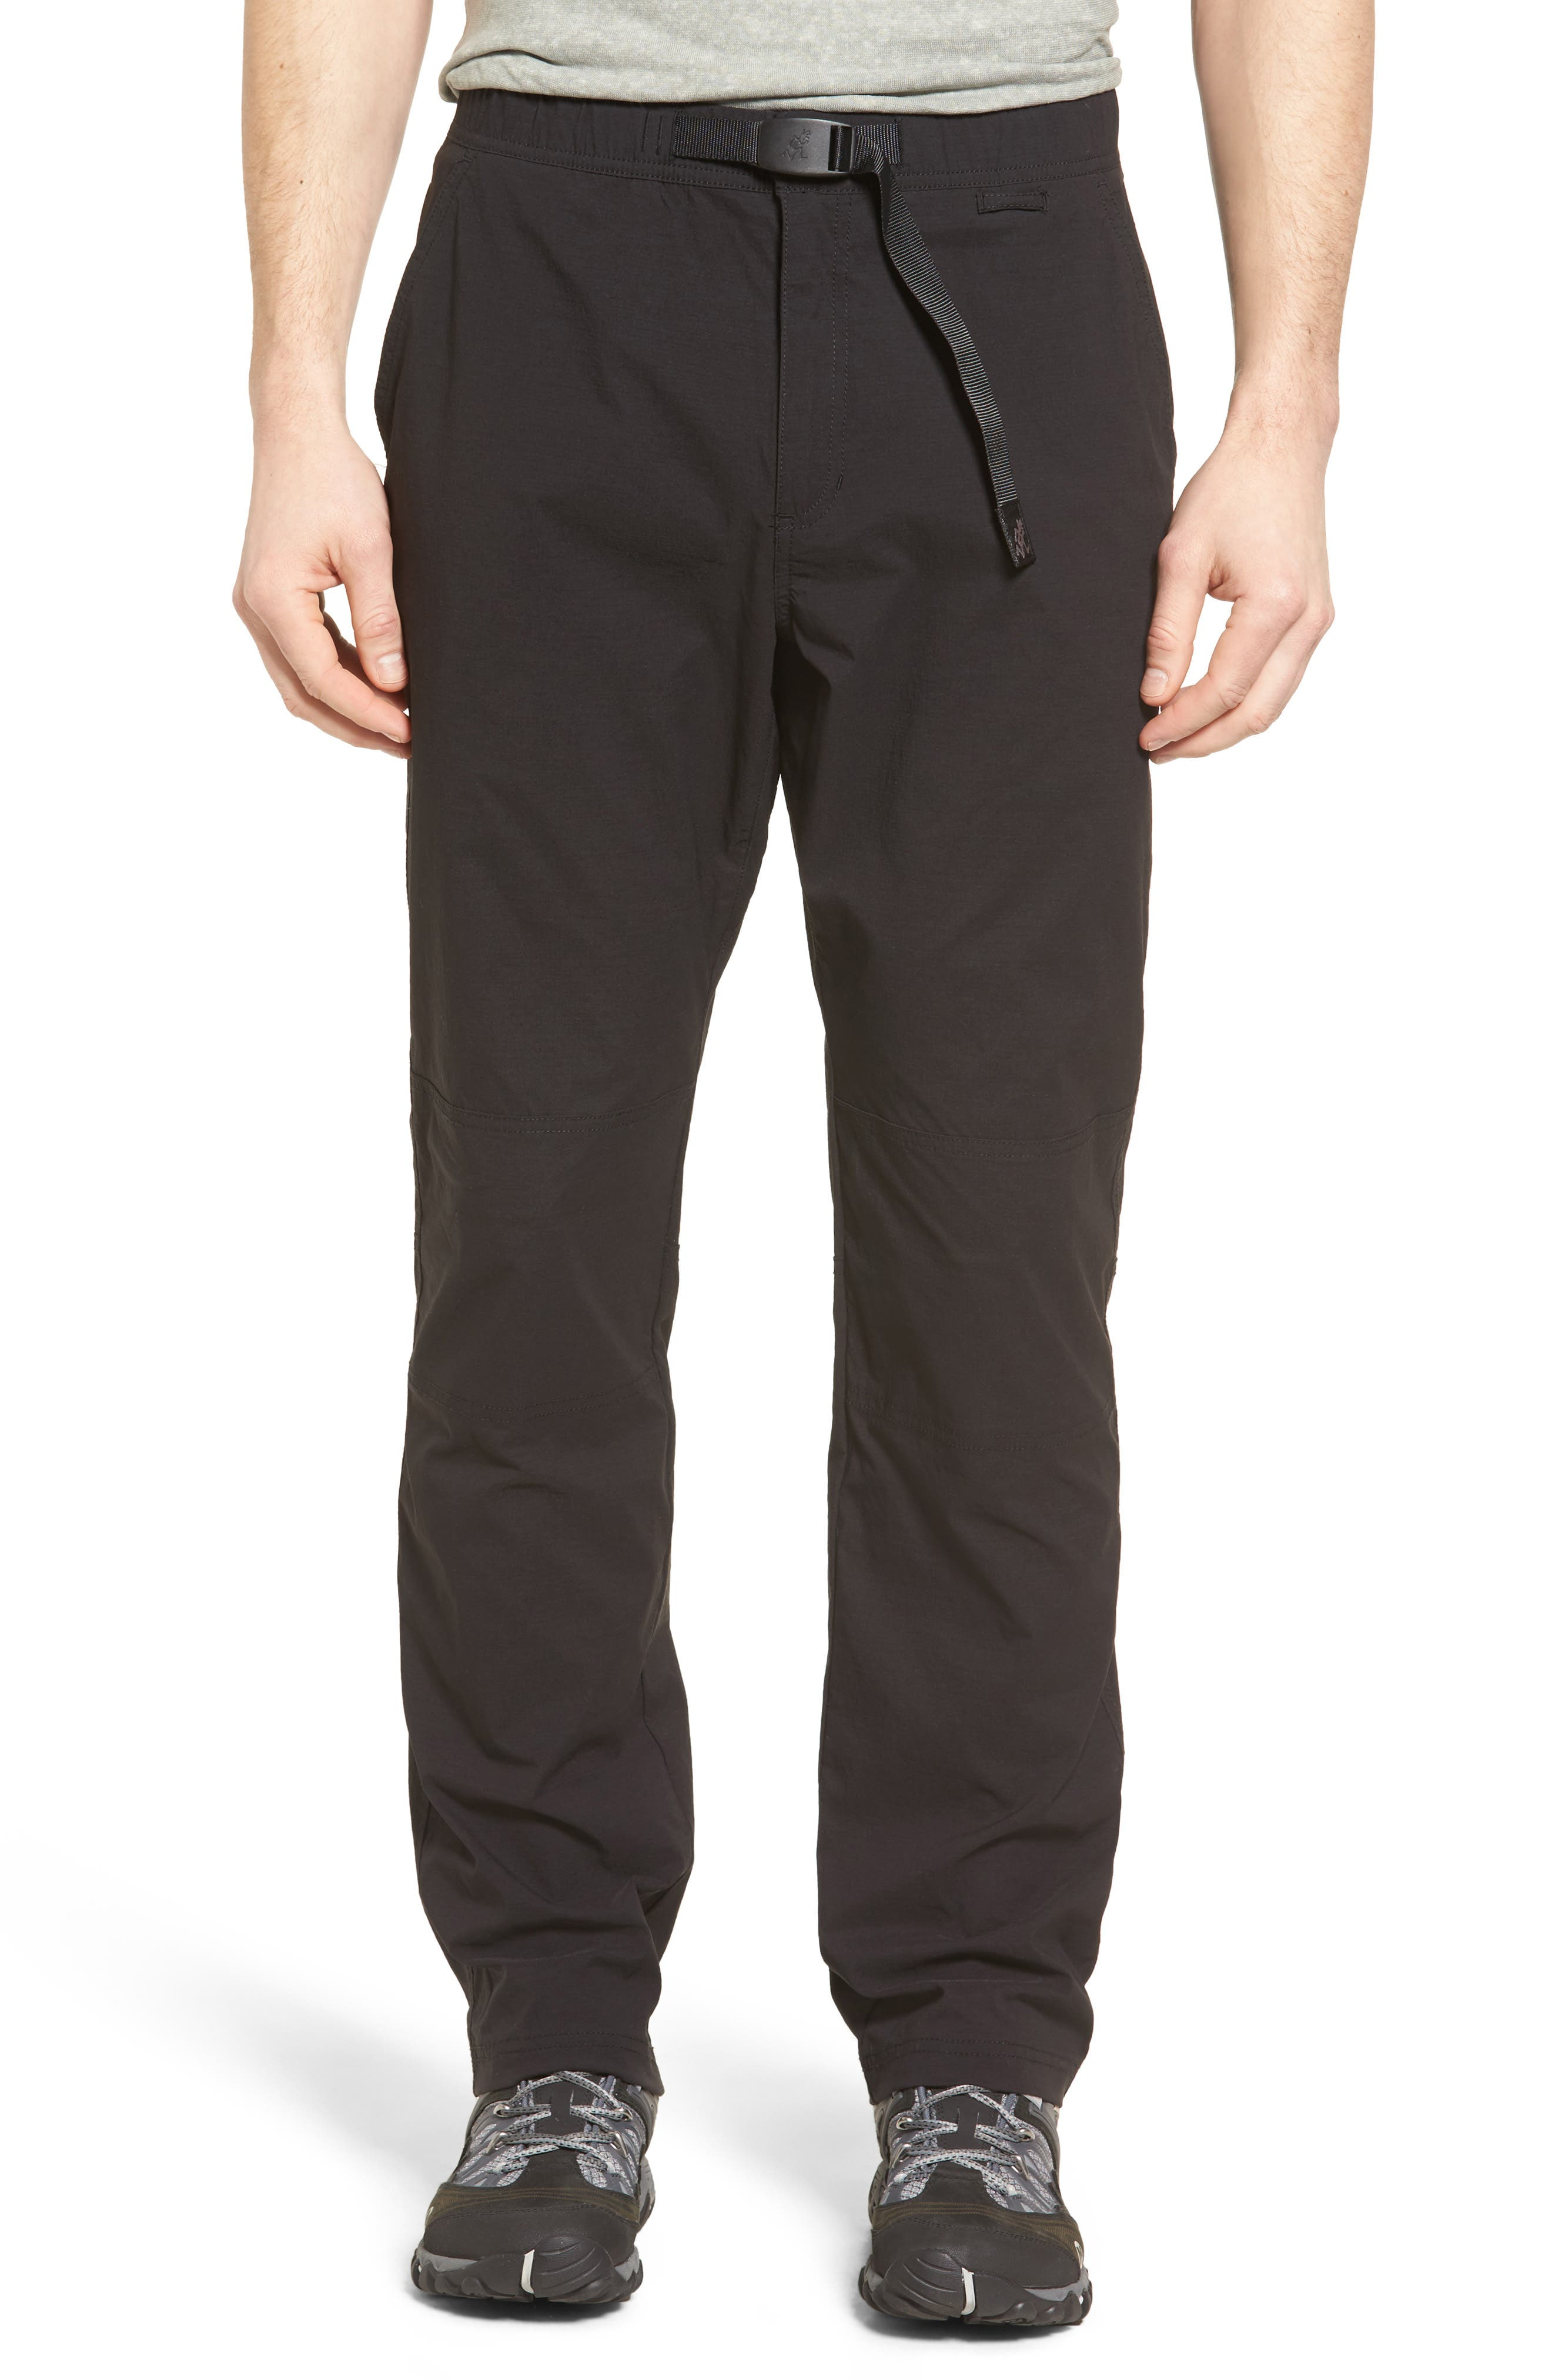 Gramicci Rough & Tumble Climber G Pants